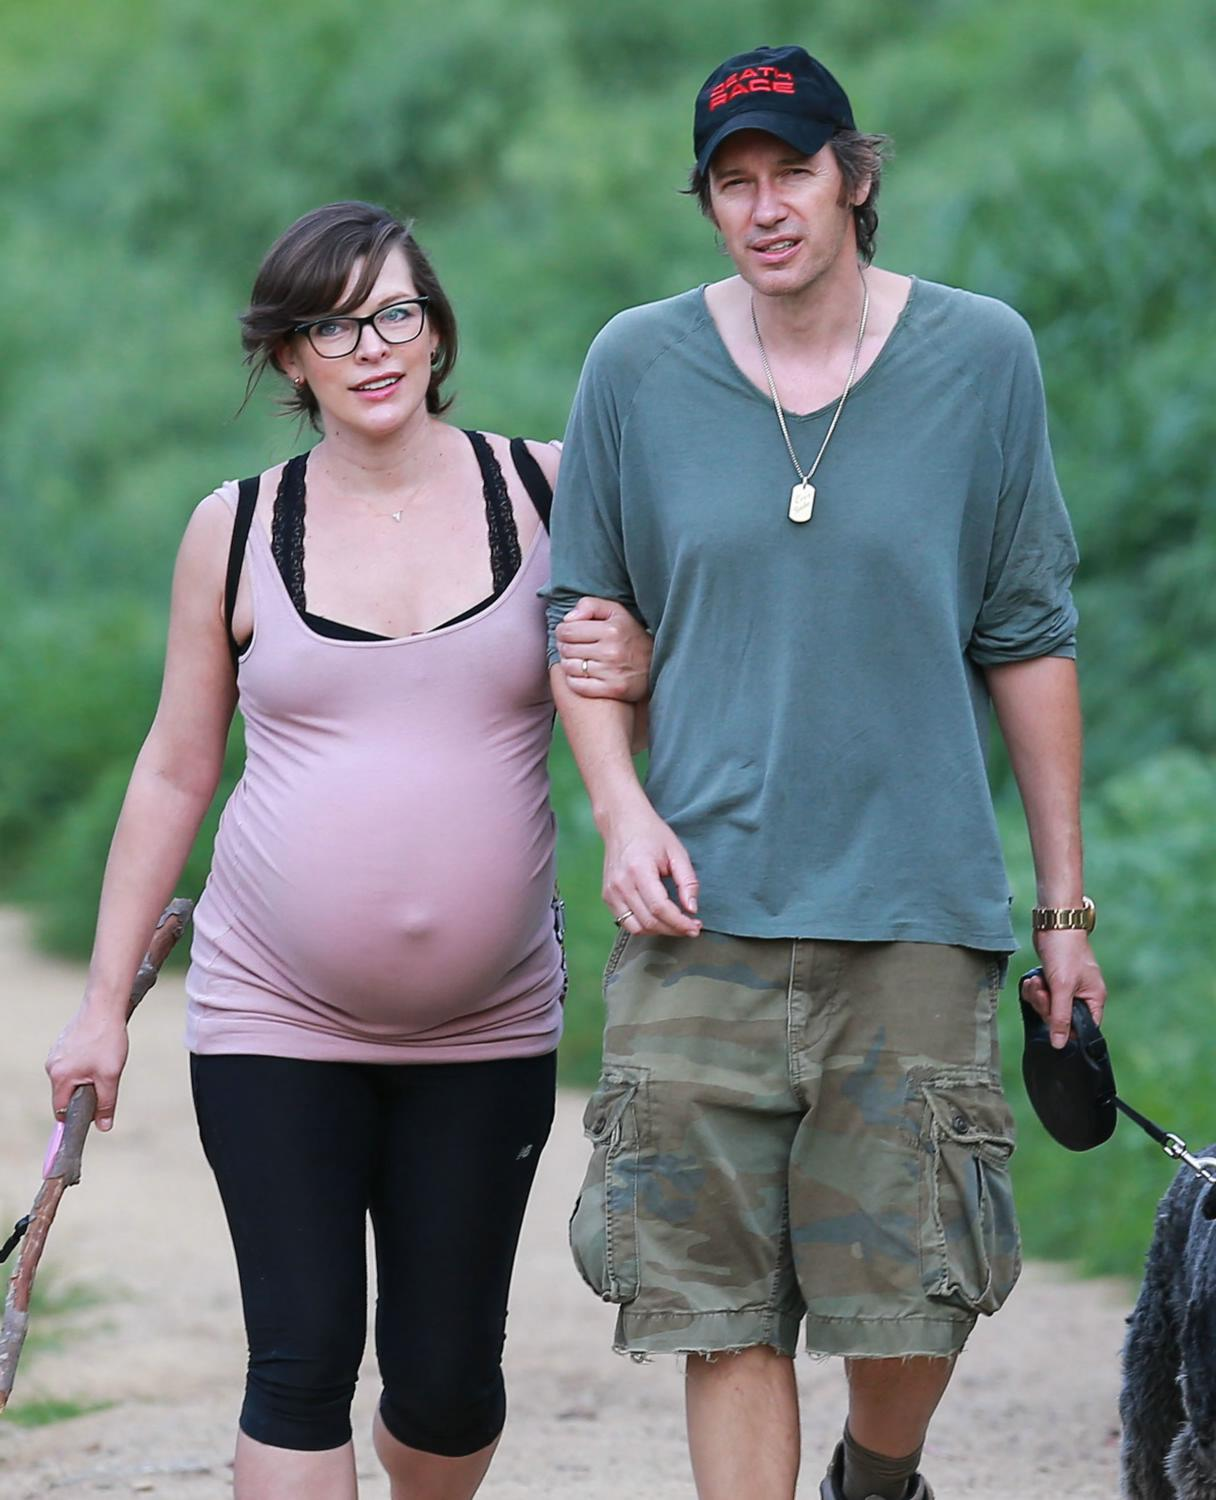 Milla Jovovich and Paul W.S. Anderson Hiking With Their Dog-1